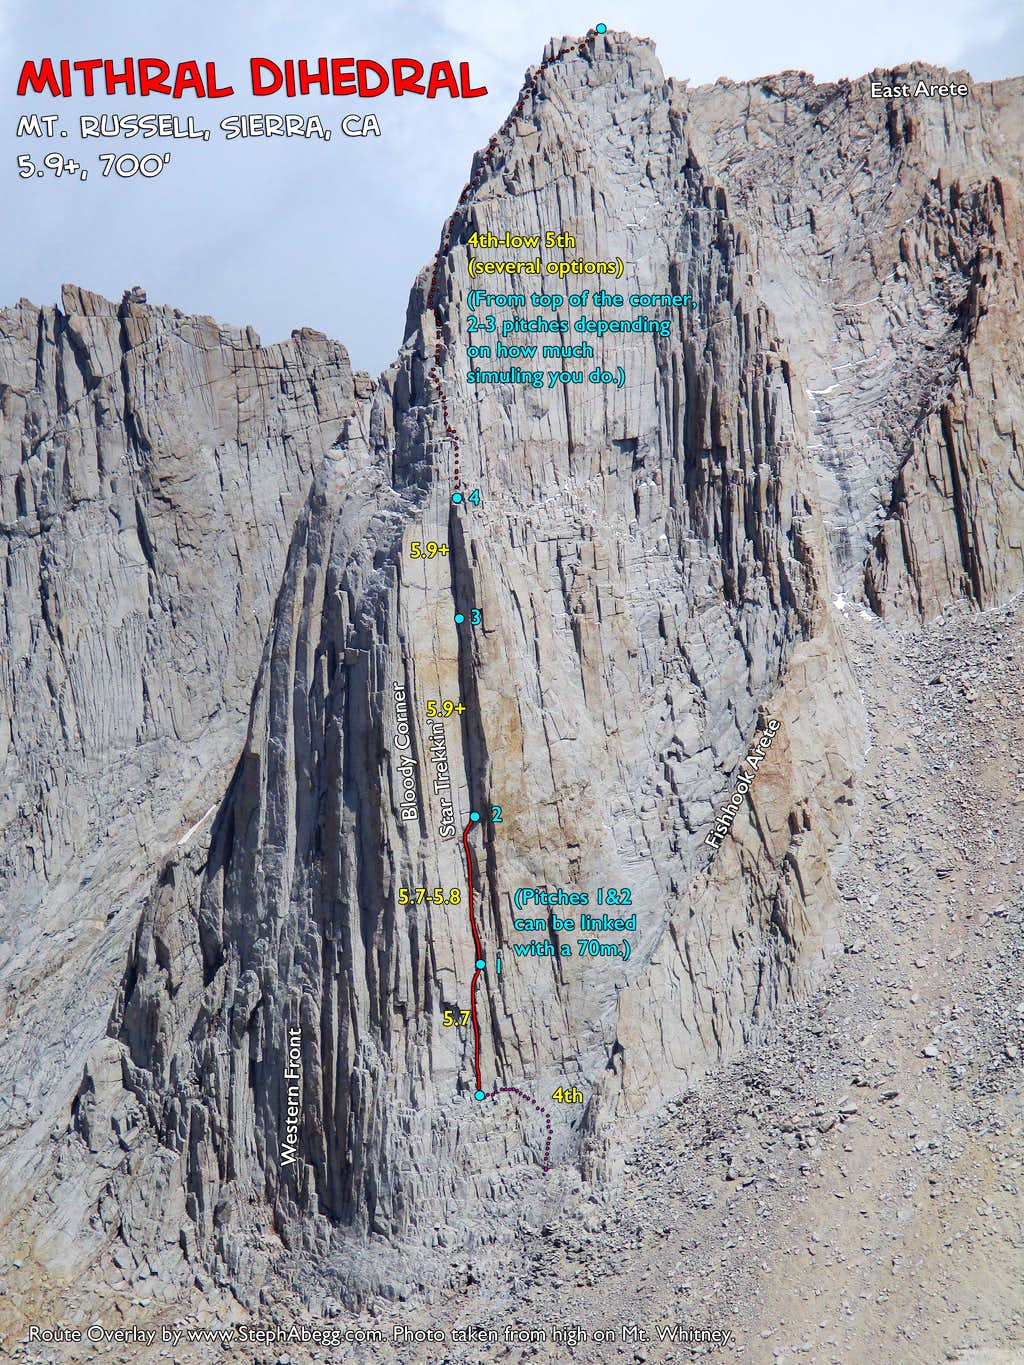 Route Overlay Mithral Dihedral on Mt. Russell